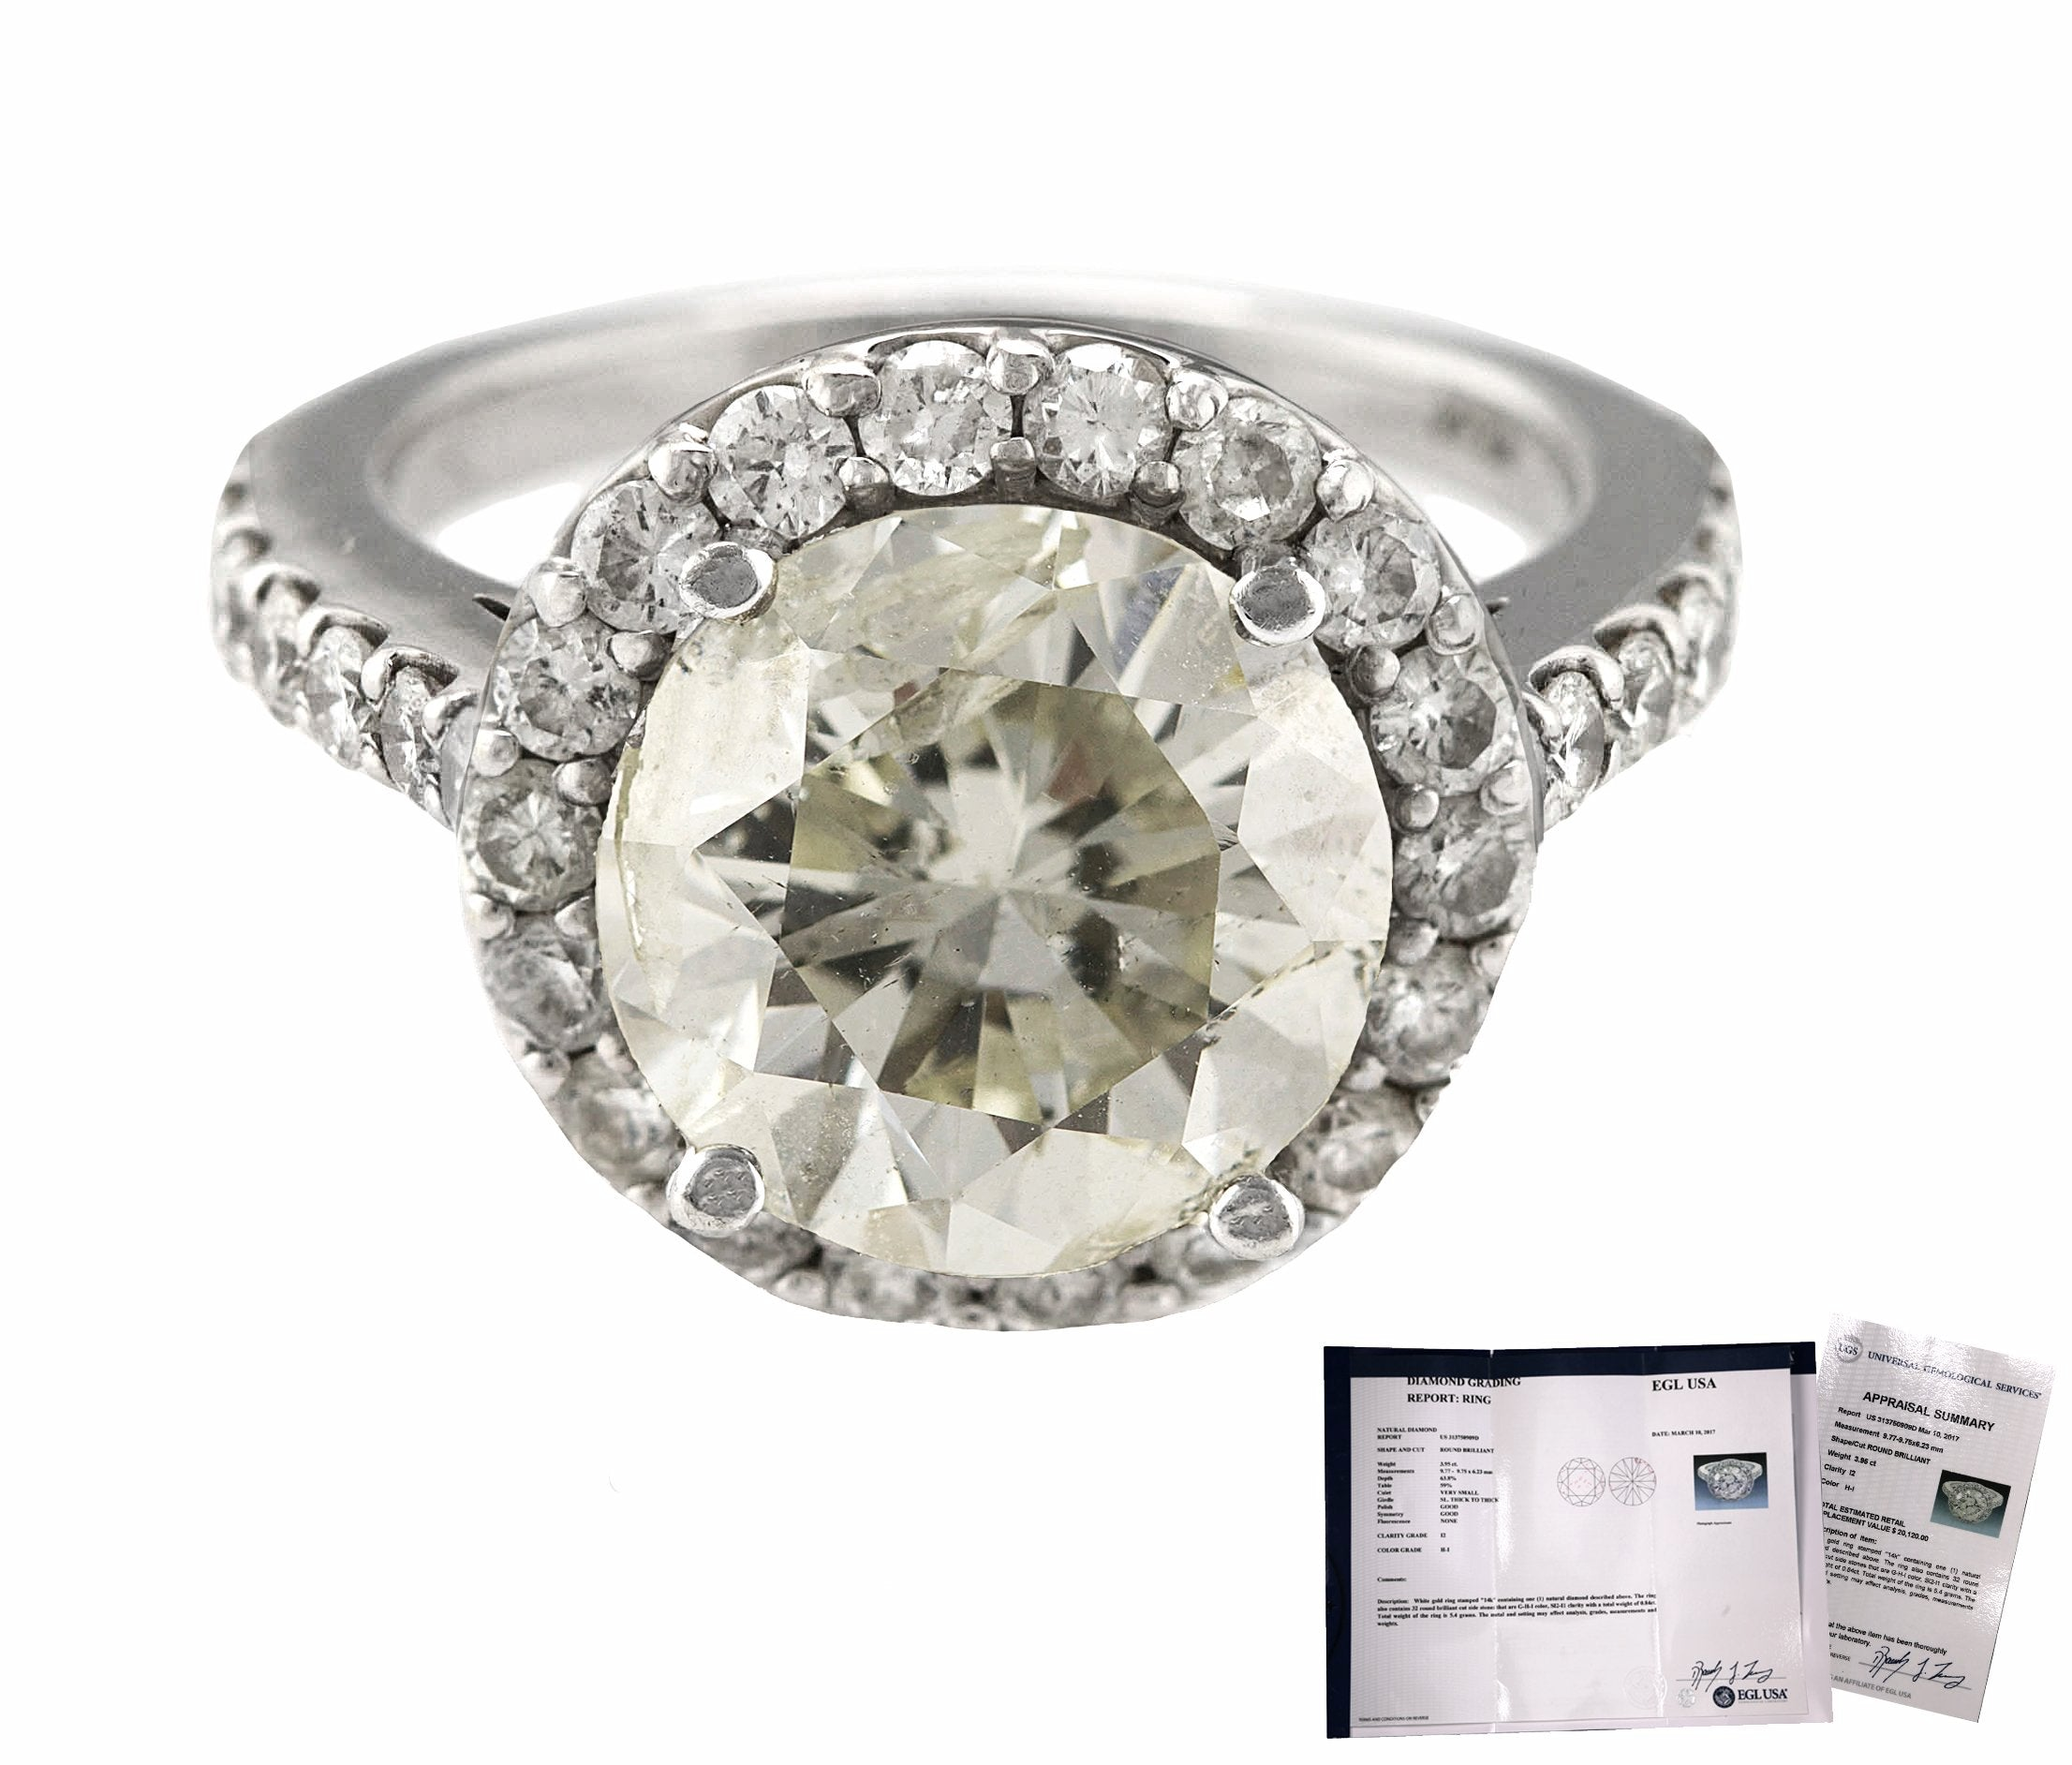 Ladies 14K White Gold 3.95 CT H-I I2 Round Brilliant Diamond Engagement Ring EGL